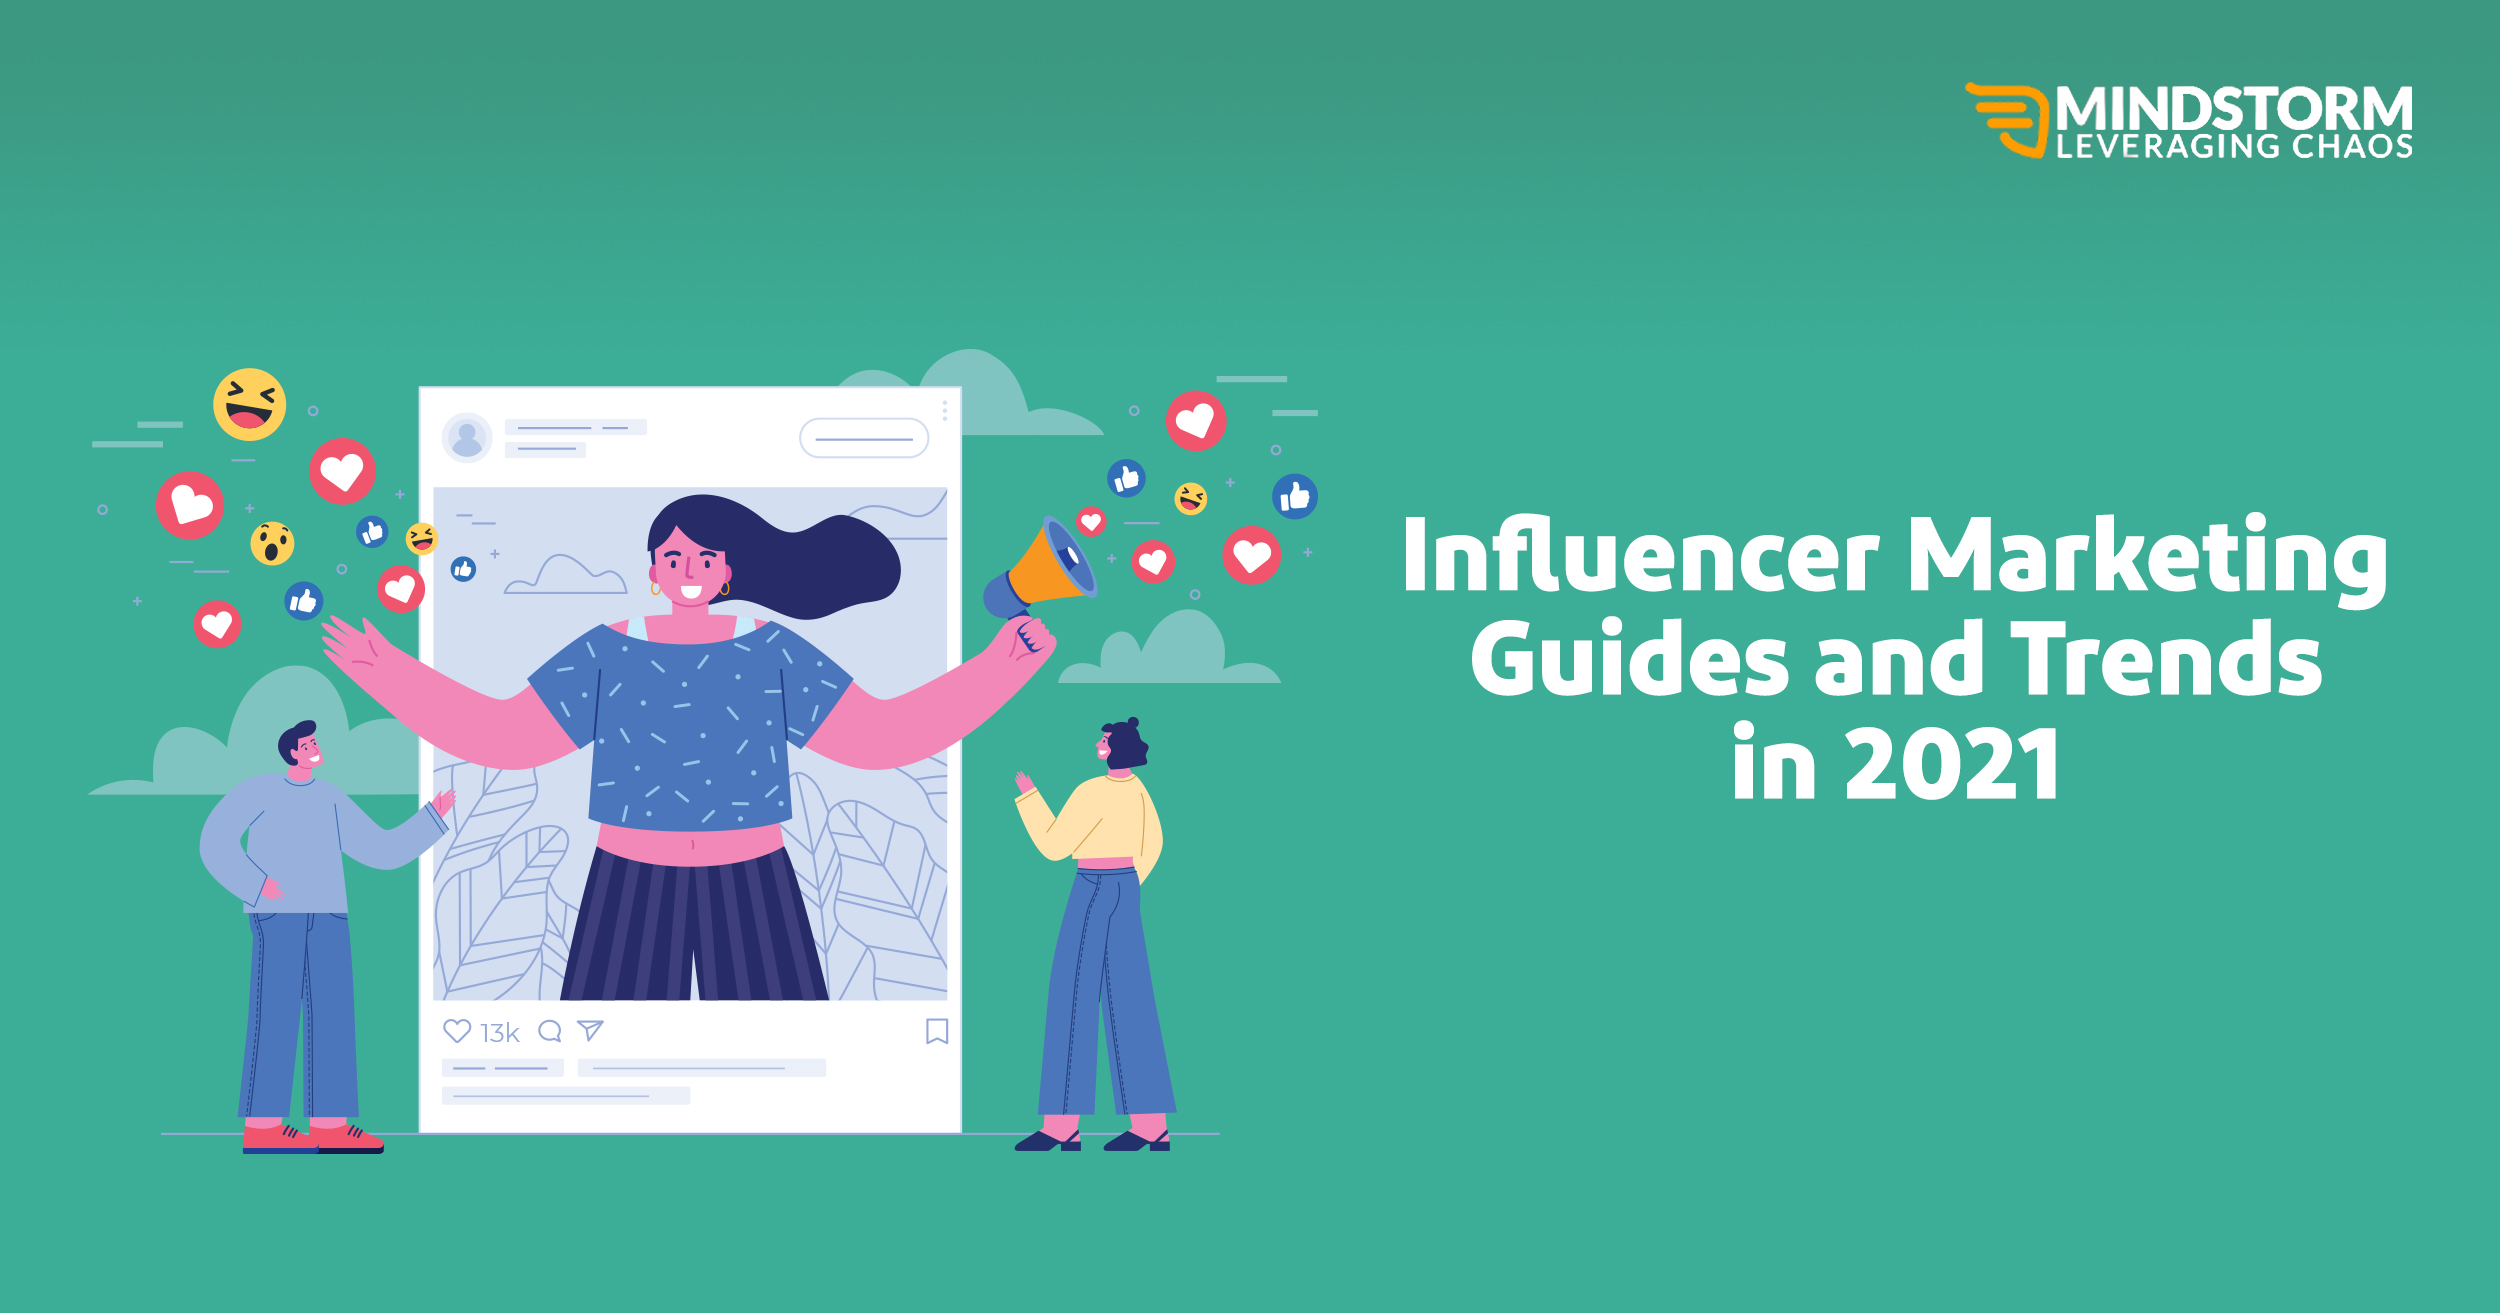 Influencer Marketing Guides & Trends in 2021